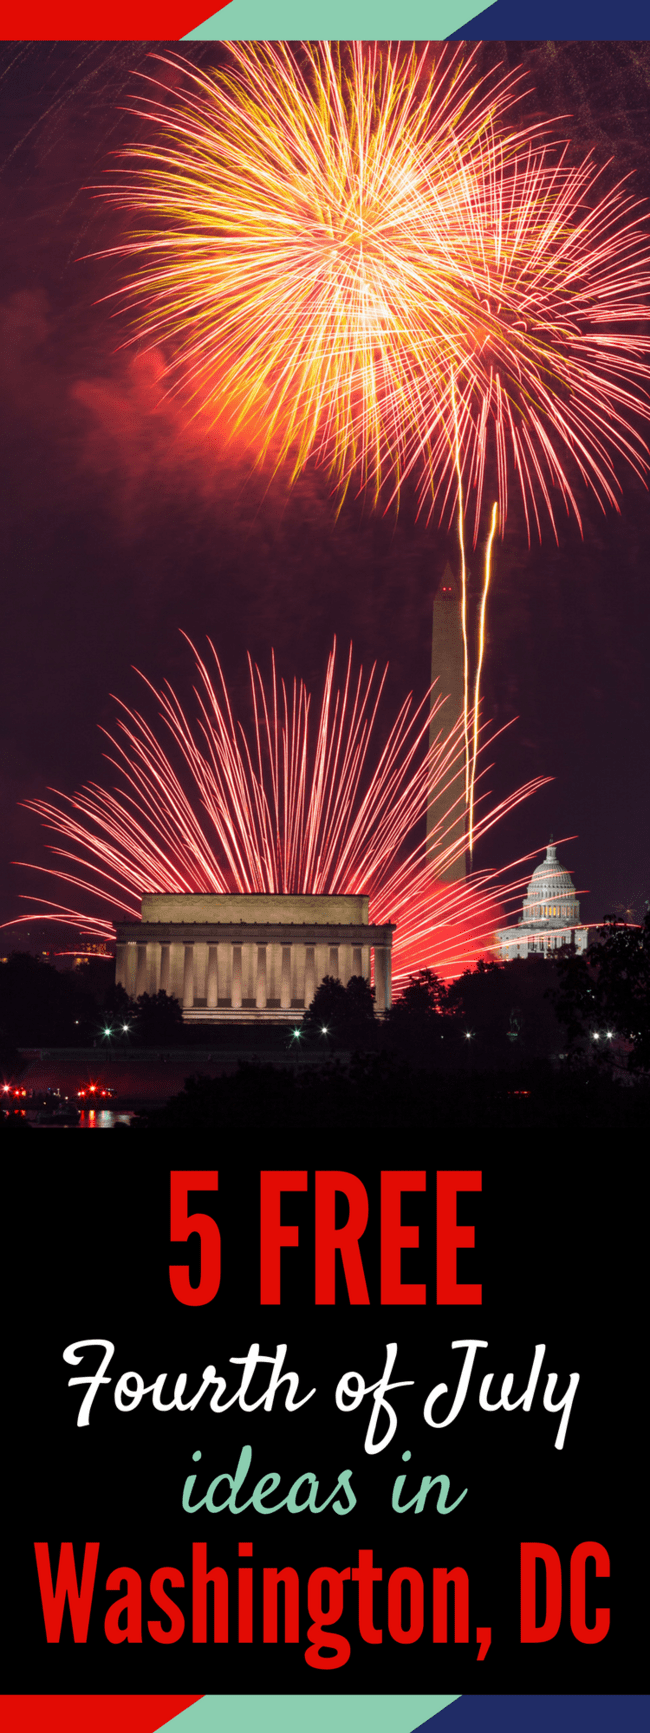 Washington DC 4th of July: 5 free ways to spend the 4th of July in DC! #WashingtonDC #travel #traveltips #summer #4thofJuly #fourthofjuly #free #fireworks #traveltips